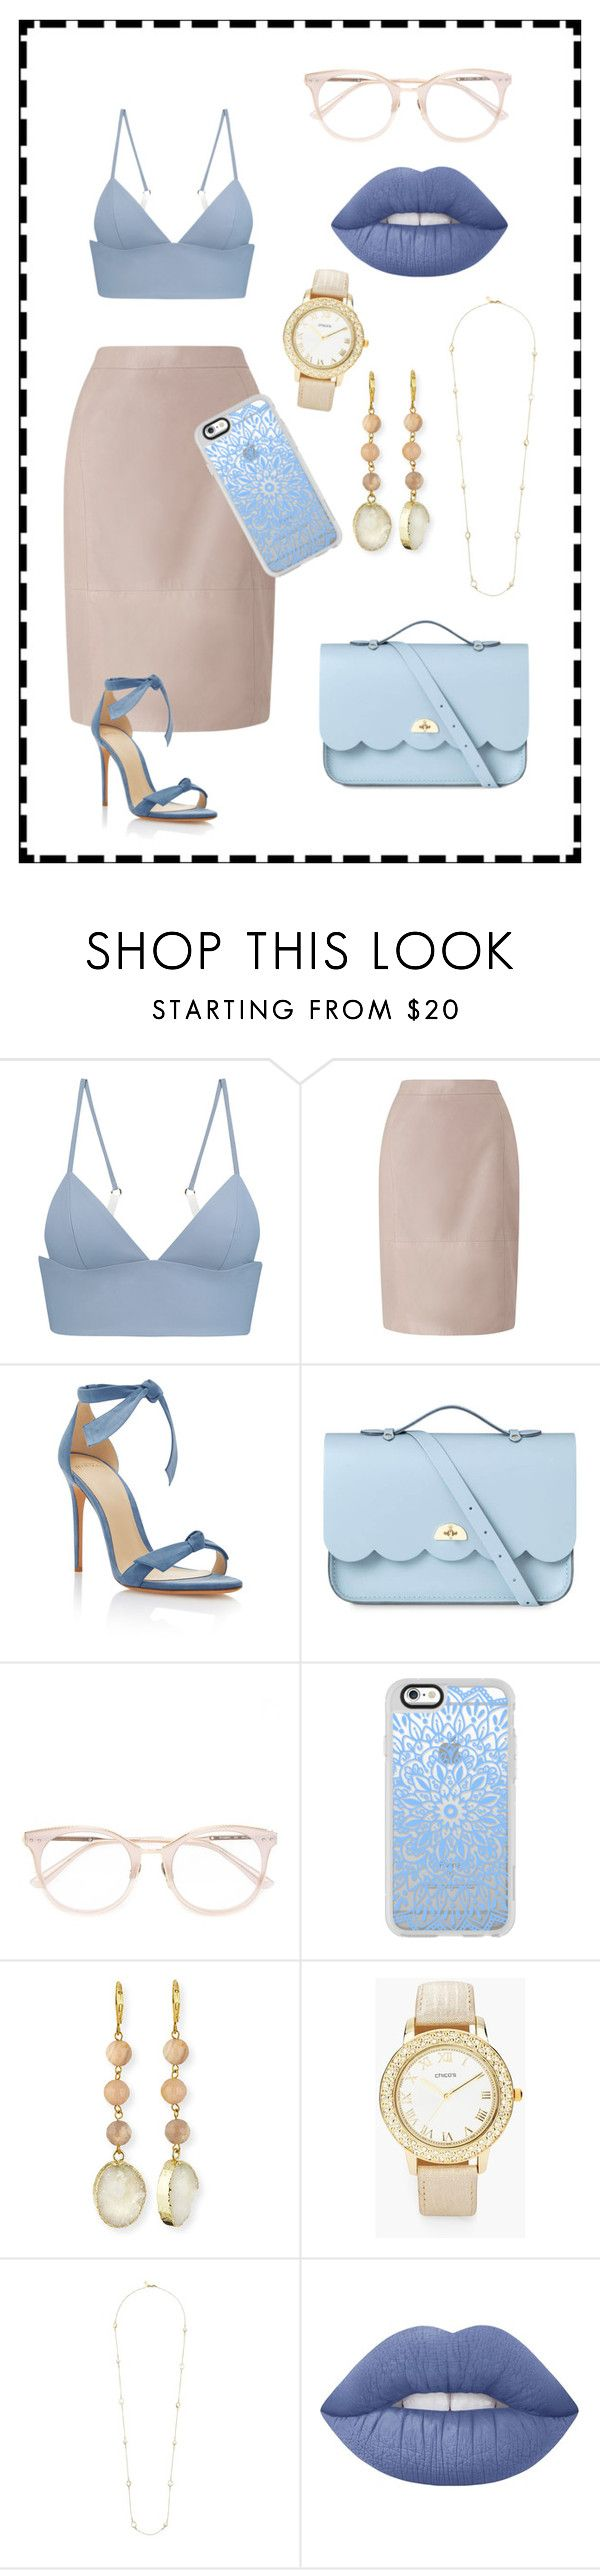 """""""💙💎✨"""" by blessedandrea ❤ liked on Polyvore featuring beauty, T By Alexander Wang, Jacques Vert, Alexandre Birman, The Cambridge Satchel Company, Casetify, Panacea, Chico's, Kate Spade and Lime Crime"""